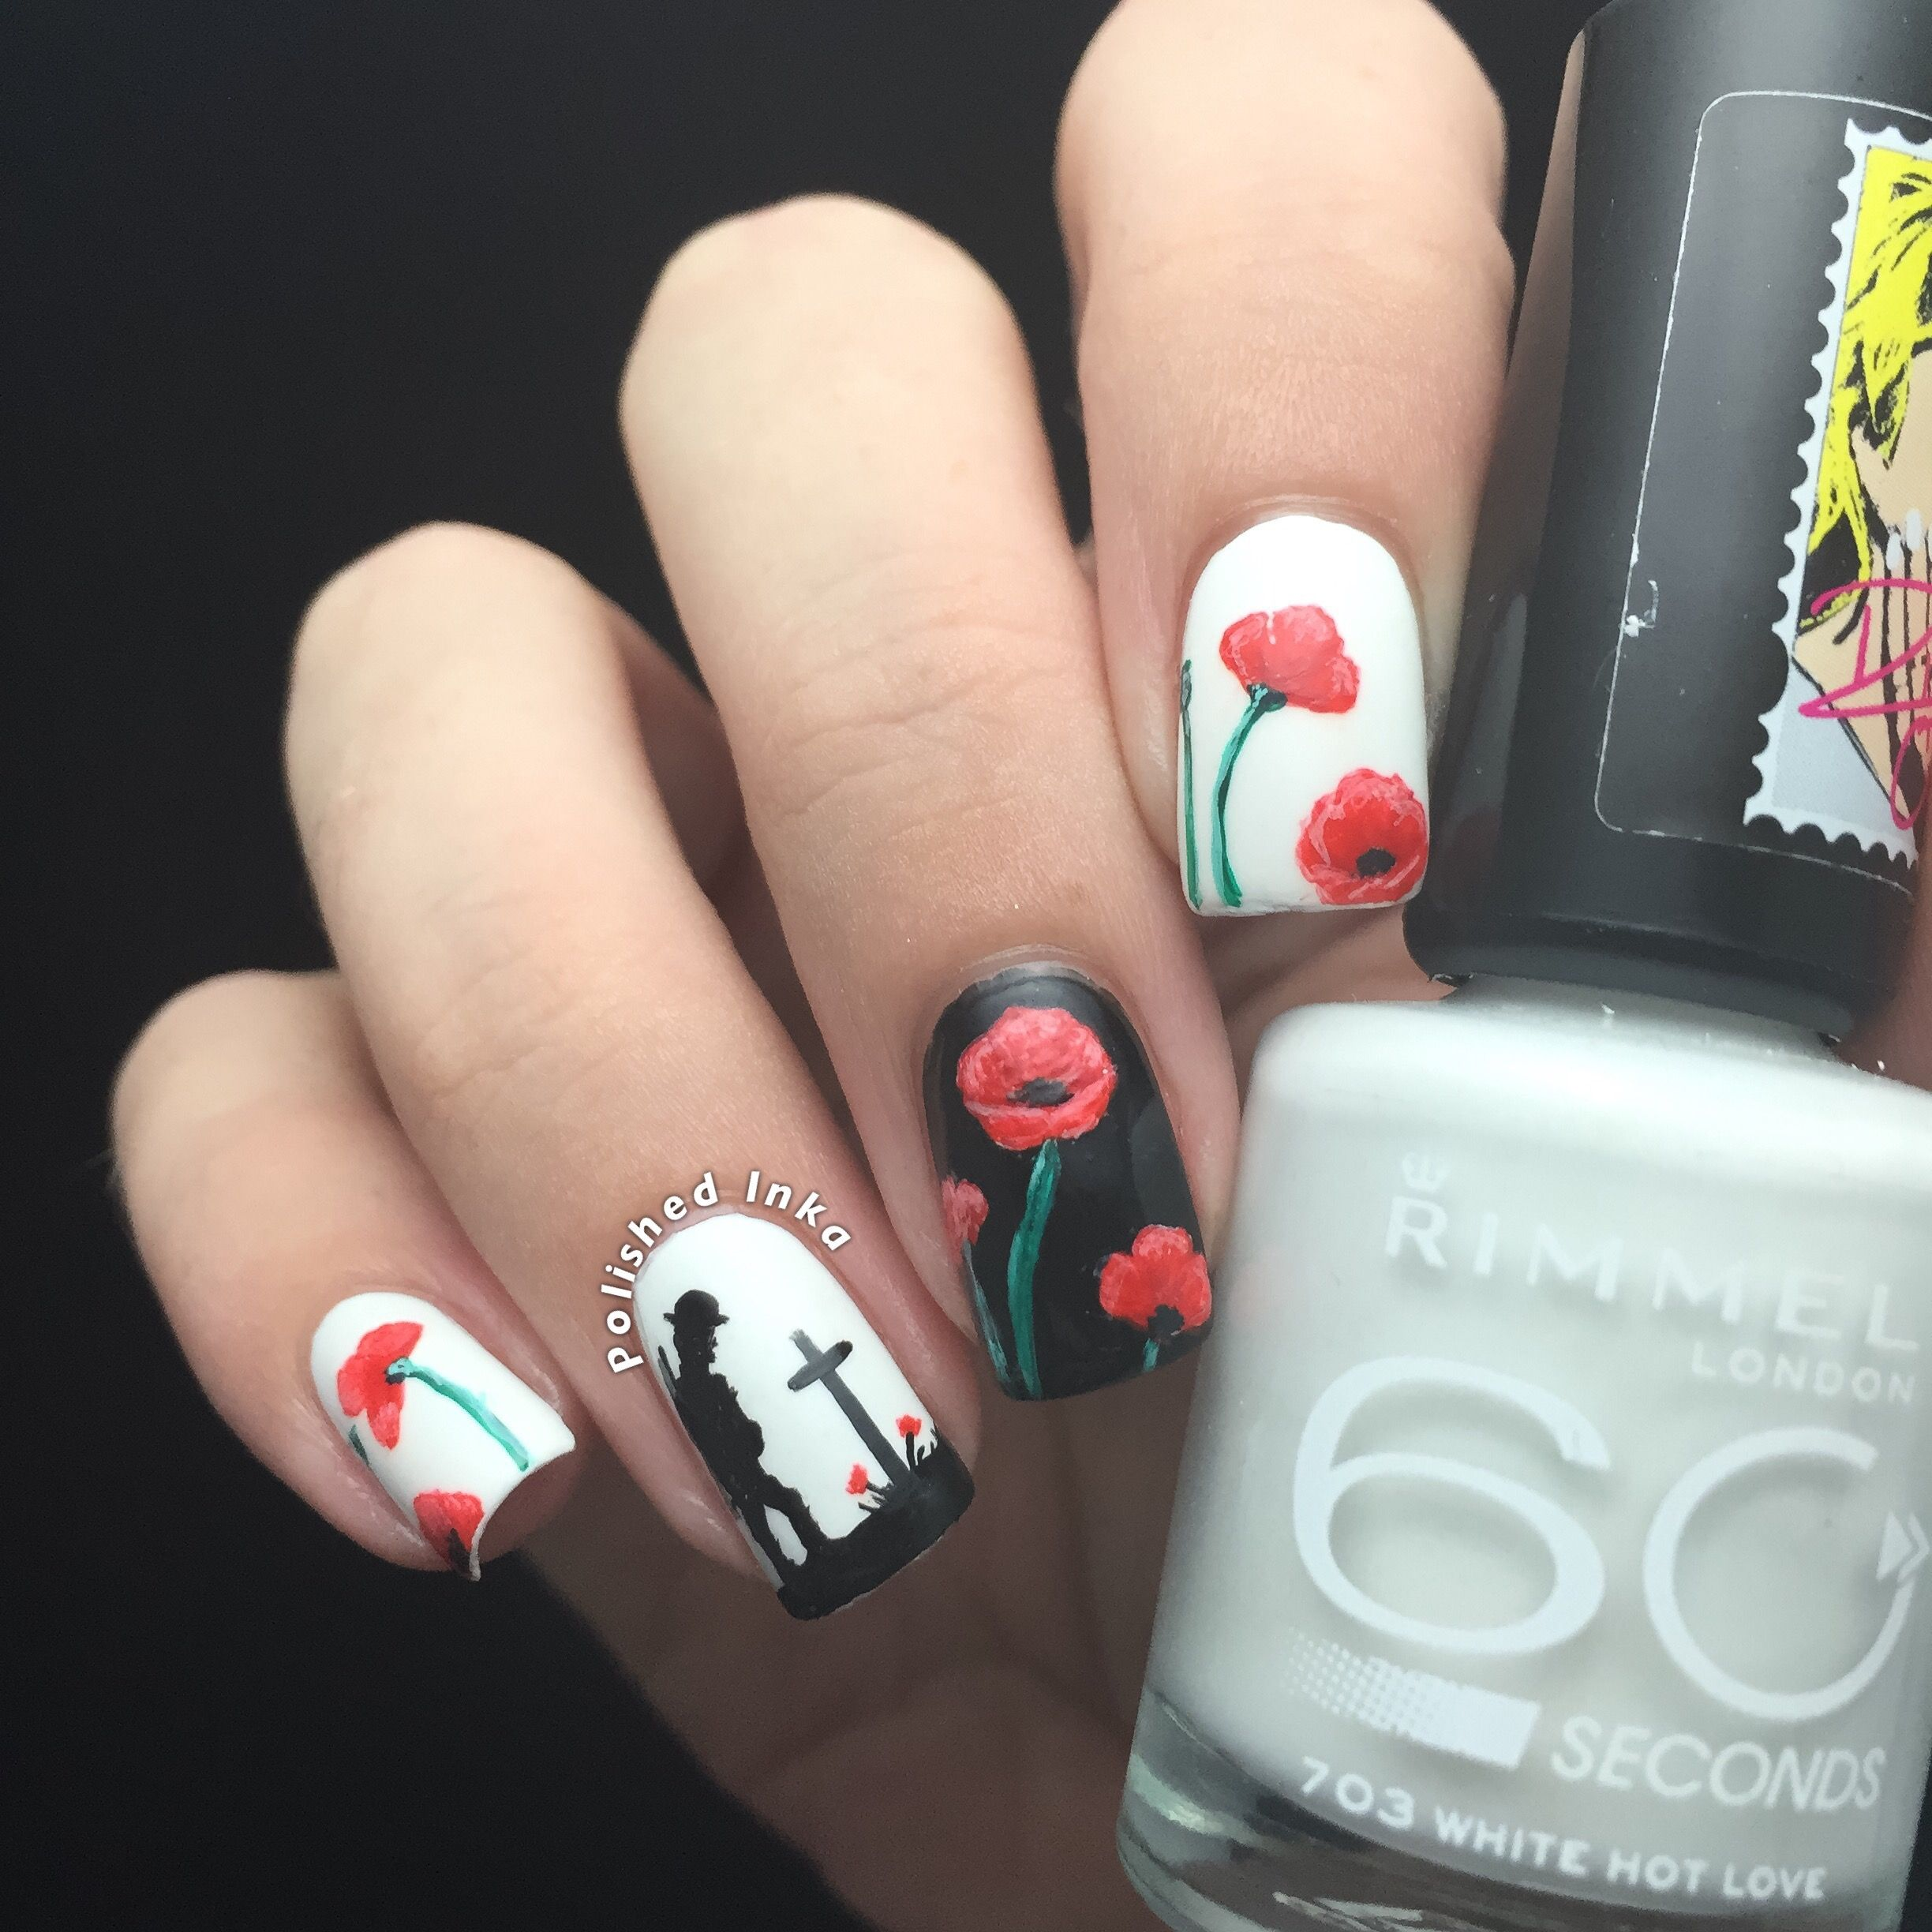 Black Poppy Nail Polish: Rememberance Day Poppy Nail Art